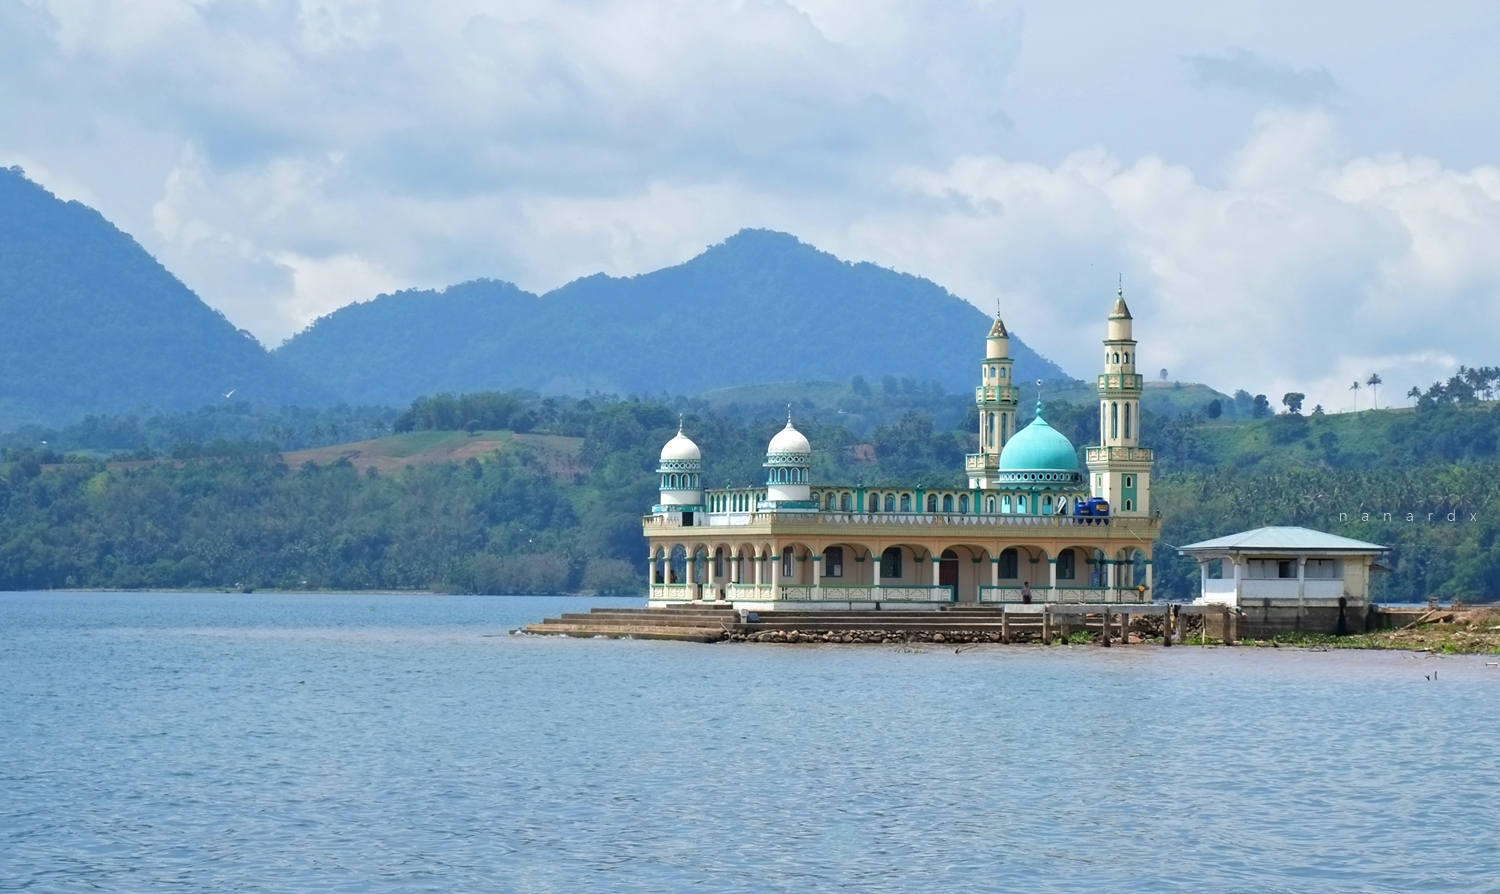 One of the beautiful mosques at Lanao Lake in Lanao del Sur